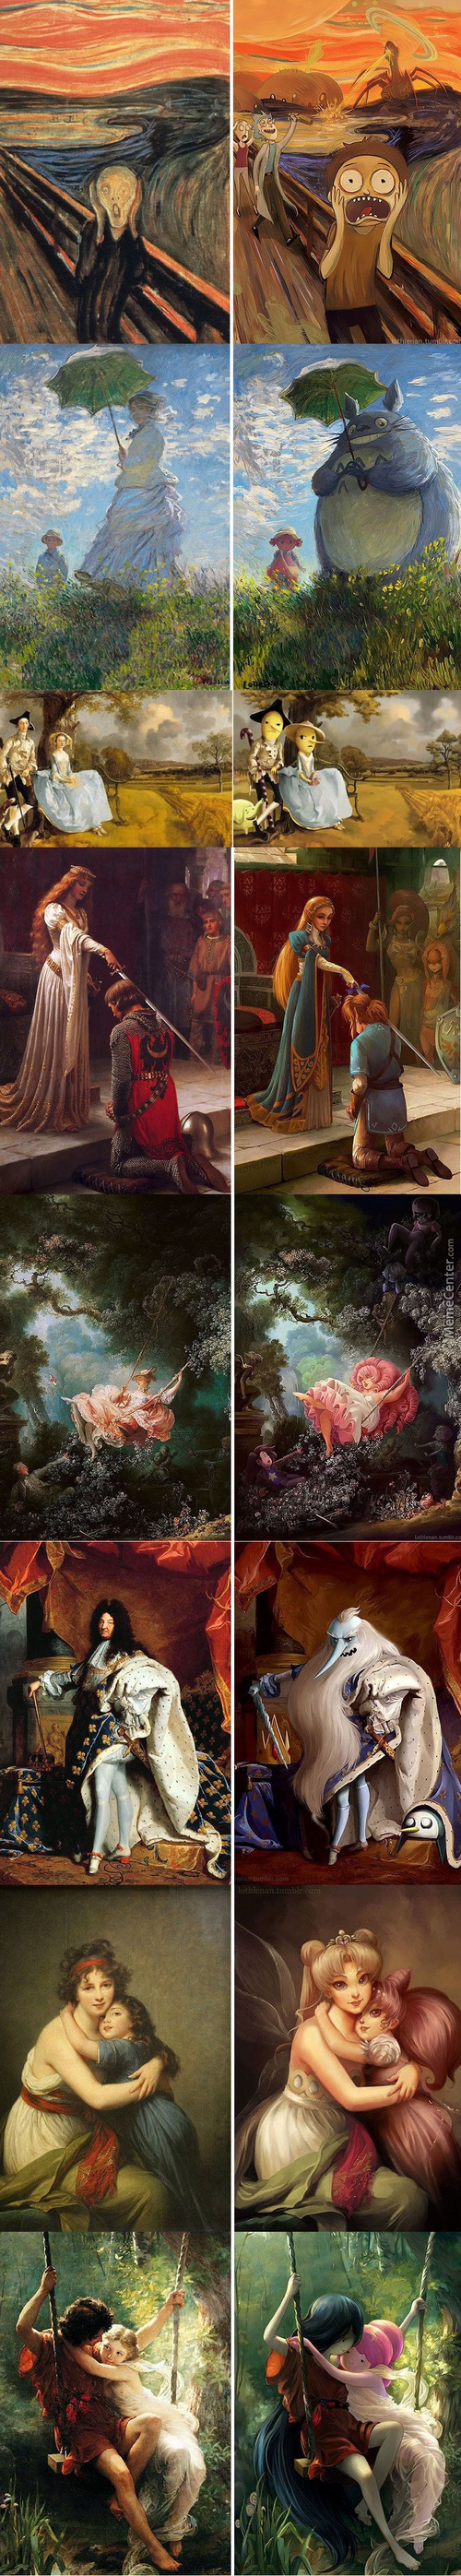 Altered Artwork 2 Famous Paintings Re-Imagined By Lothlenan